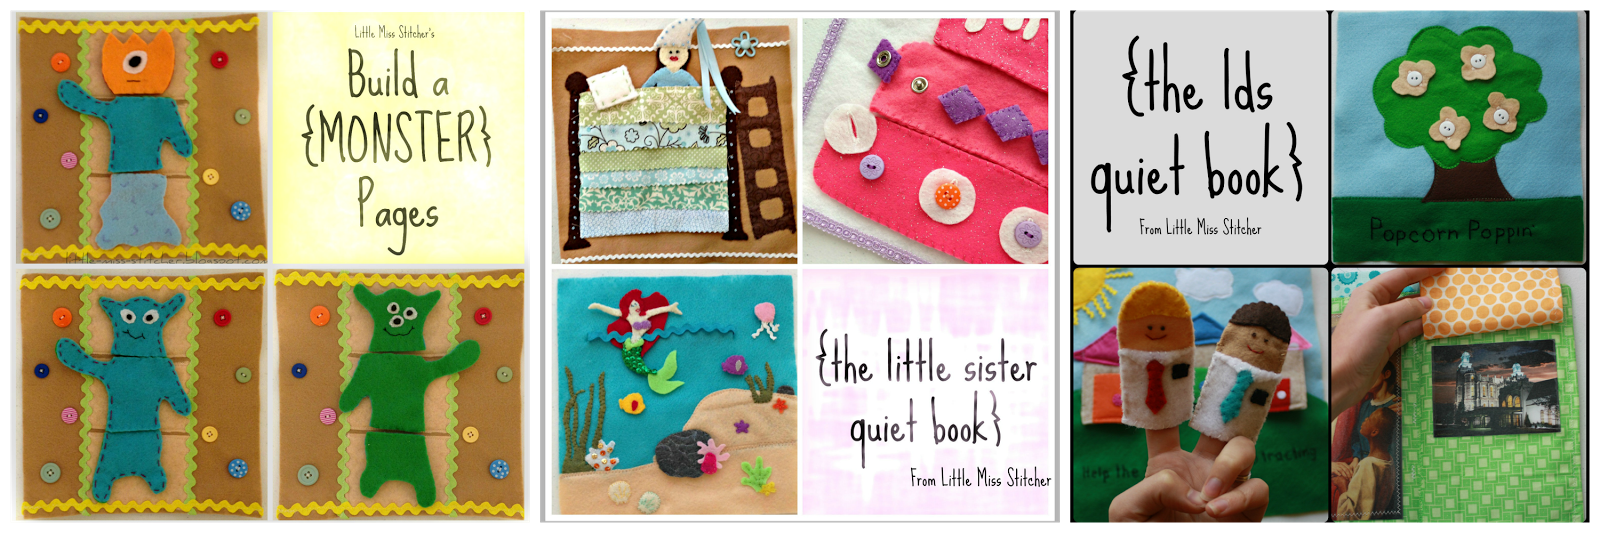 http://little-miss-stitcher.blogspot.com/2013/12/quiet-book-round-up-2013.html